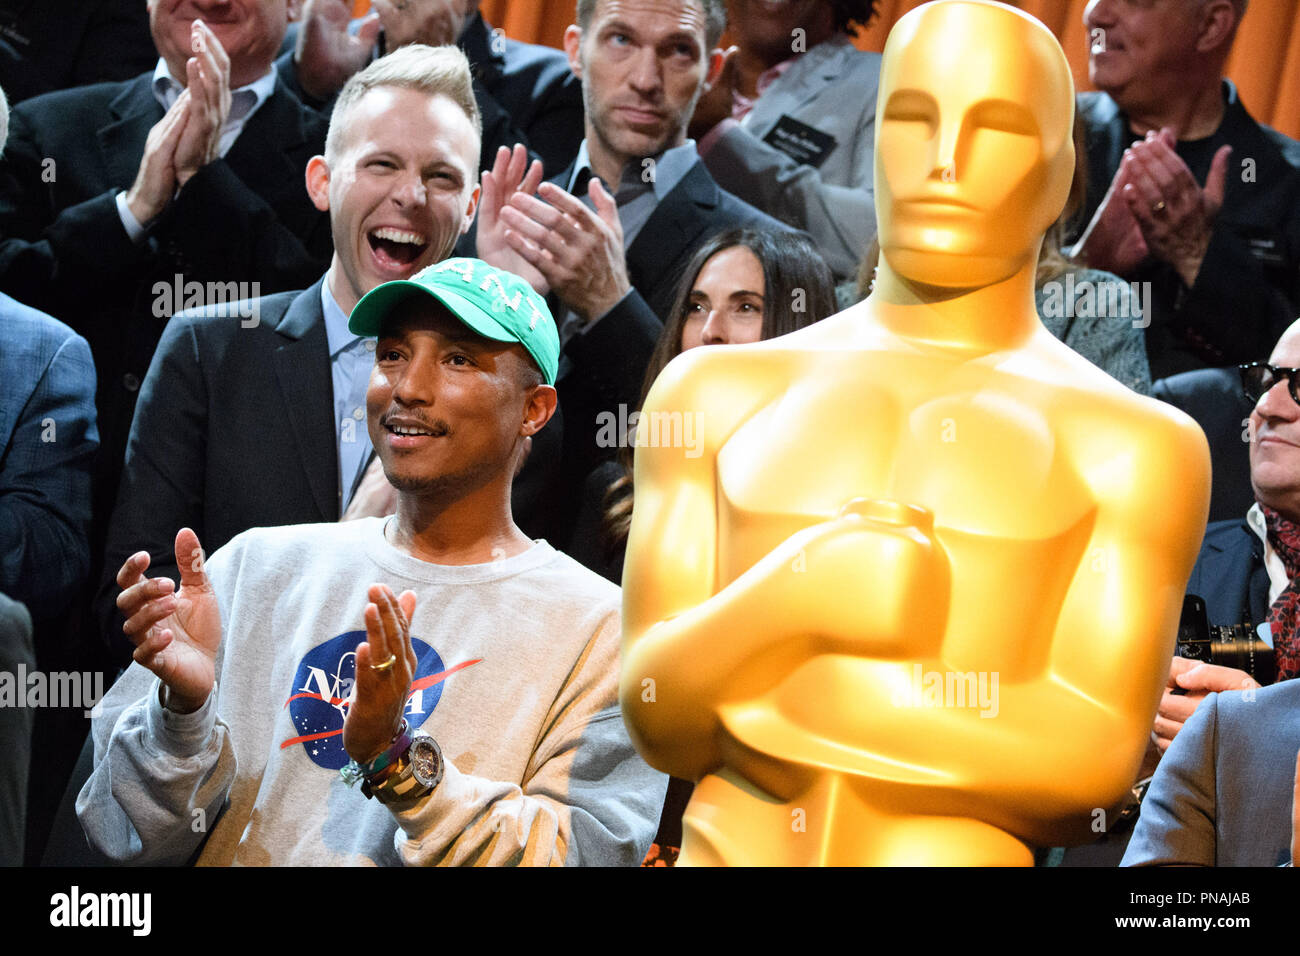 Pharrell Williams at the Oscar® Nominees Luncheon in Beverly Hills Monday, February 6, 2017. The 89th Oscars® will air on Sunday, February 26, live on ABC.  File Reference # 33227_021THA  For Editorial Use Only -  All Rights Reserved - Stock Image